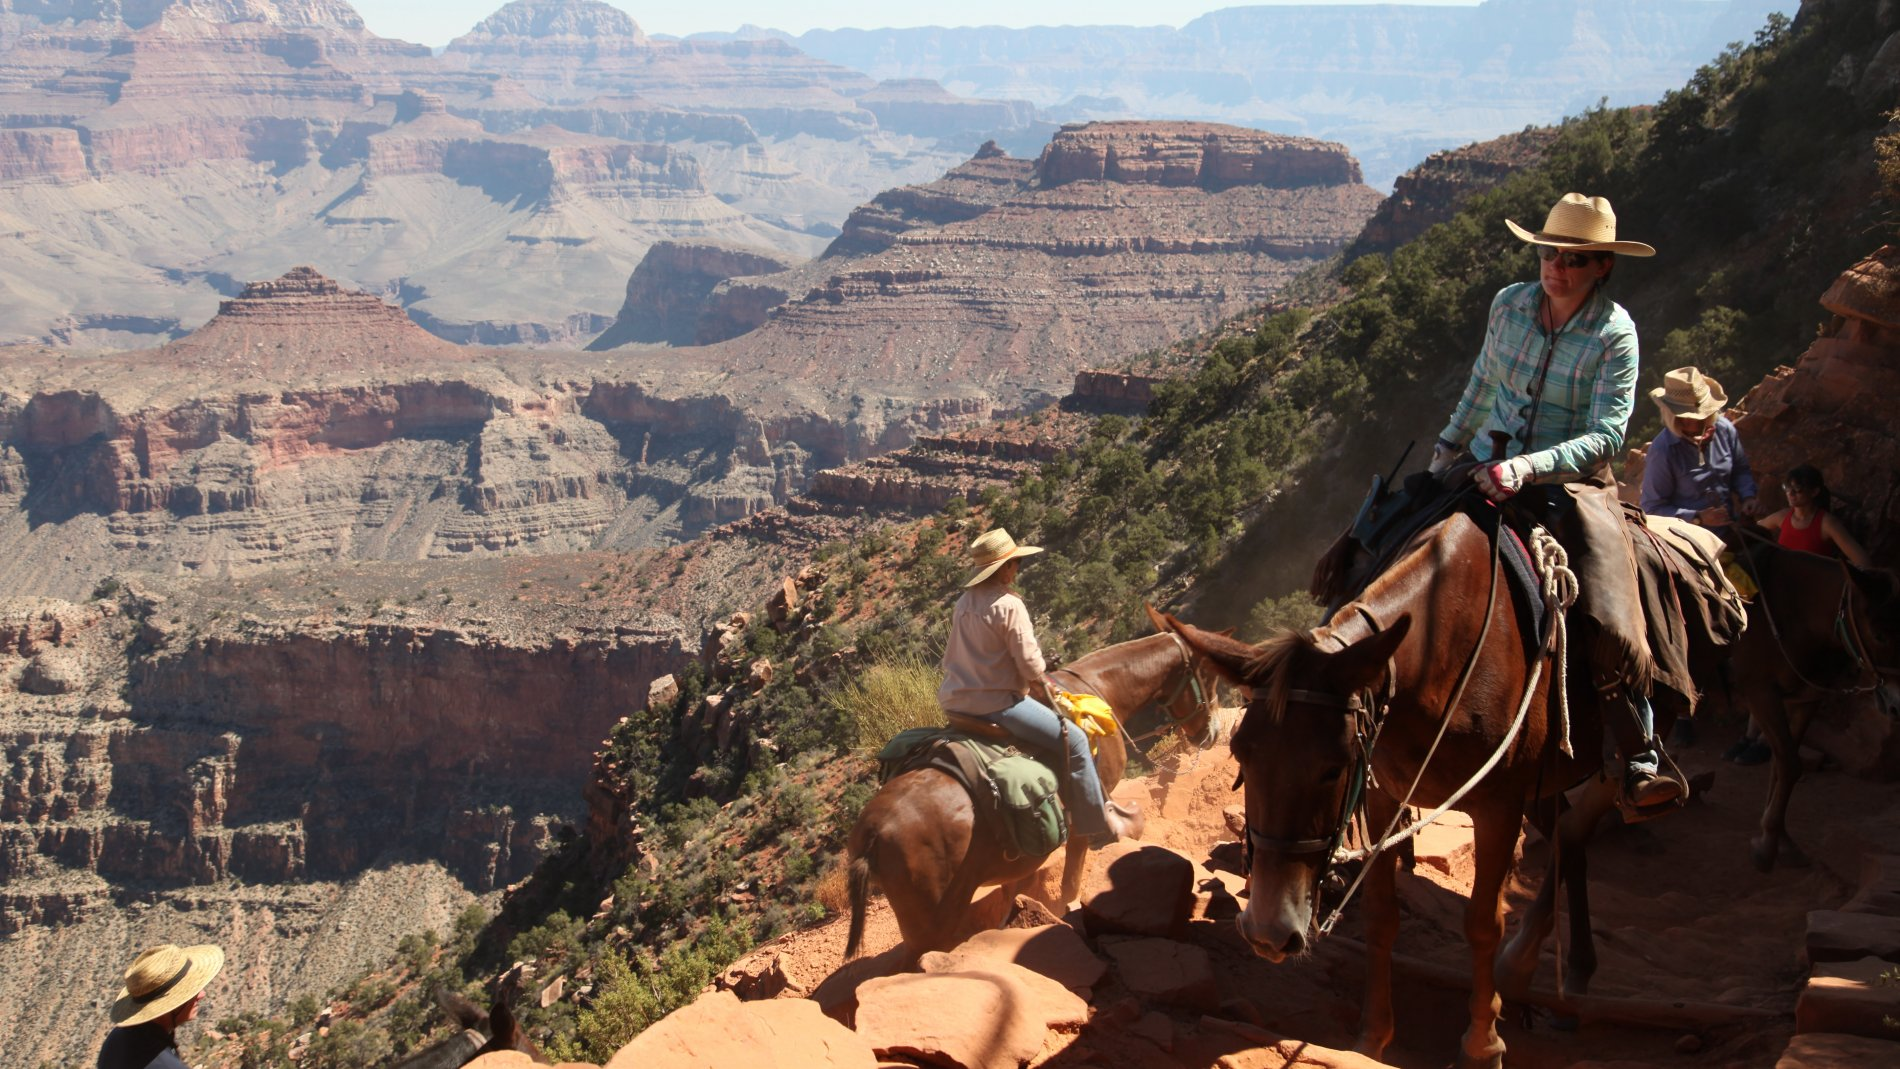 IMG_1020.JPG: catari..., Grand Canyon